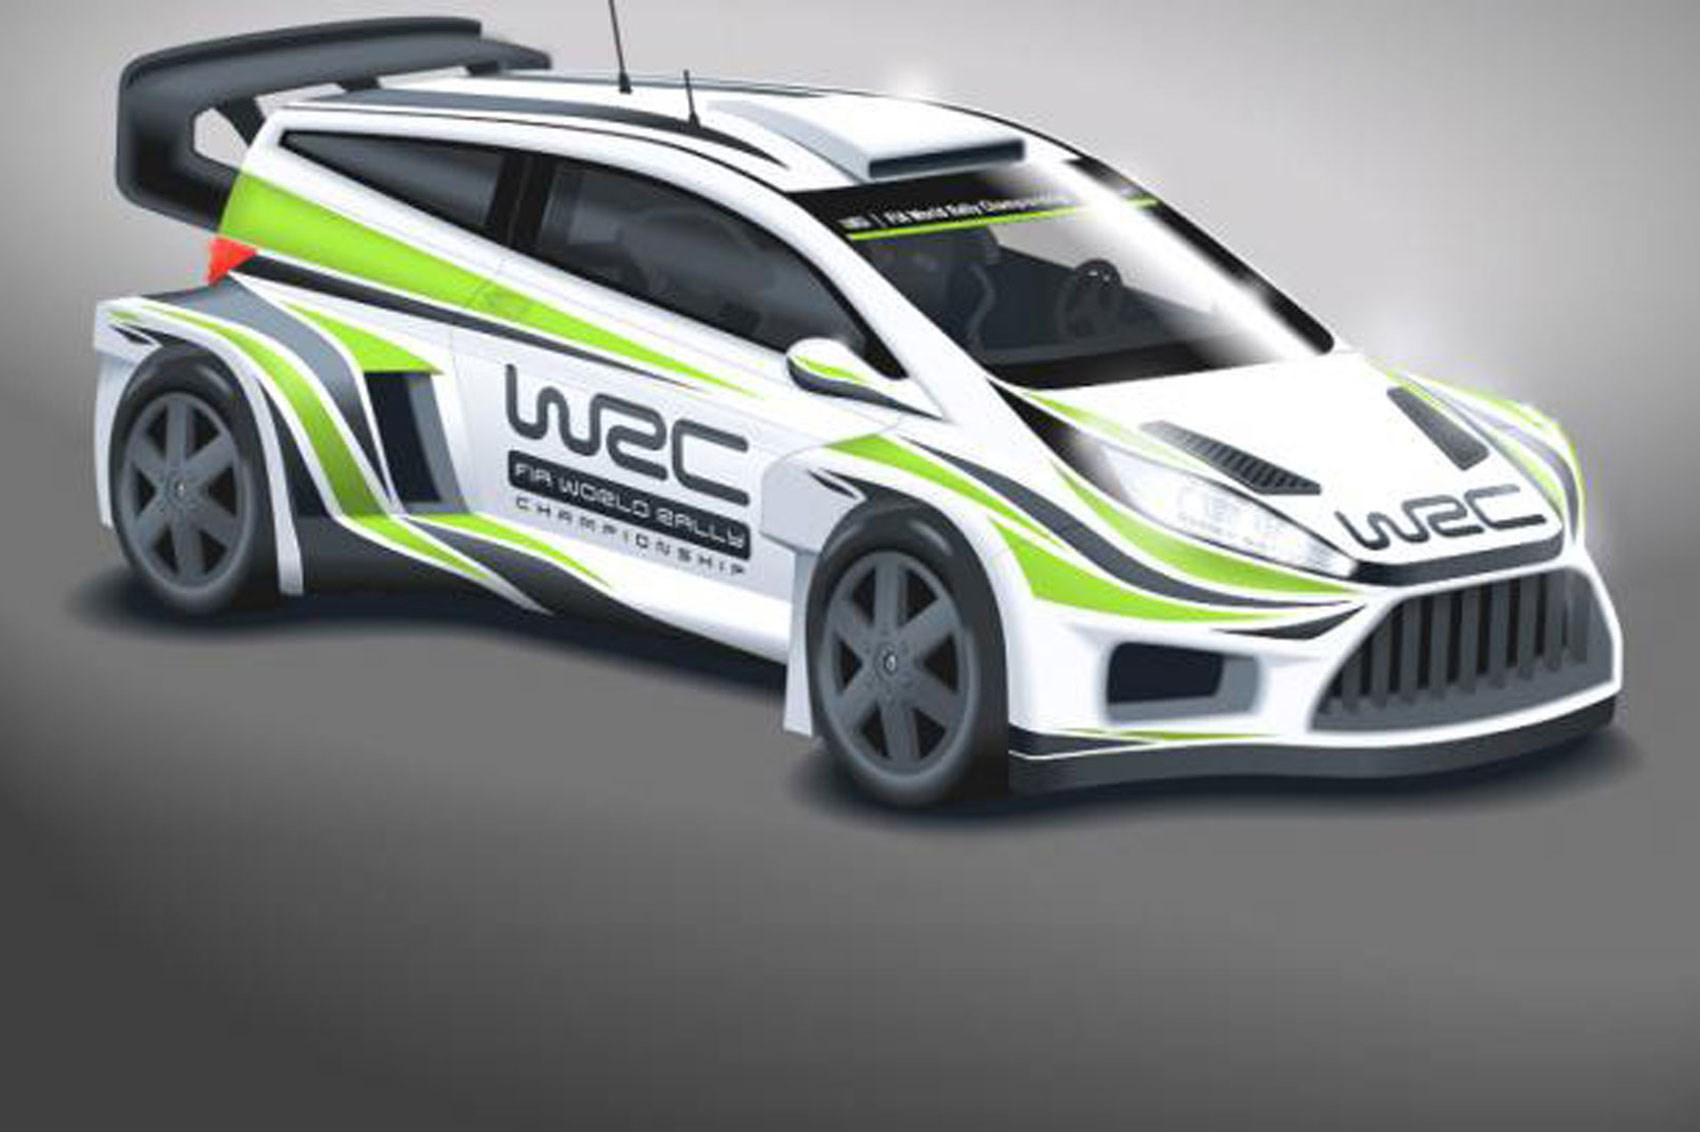 Ultrablogus  Unusual Wild New Look For Wrc Cars In  By Car Magazine With Glamorous Wrc Cars Will Get Wider Bodies Bigger Wings And More Power For  With Adorable Ford Fusion Interior  Also Audi A  Interior In Addition  Honda Accord Sport Interior And Hyundai Accent  Interior As Well As  Ford Focus Zx Interior Additionally  Chevy Camaro Interior From Carmagazinecouk With Ultrablogus  Glamorous Wild New Look For Wrc Cars In  By Car Magazine With Adorable Wrc Cars Will Get Wider Bodies Bigger Wings And More Power For  And Unusual Ford Fusion Interior  Also Audi A  Interior In Addition  Honda Accord Sport Interior From Carmagazinecouk